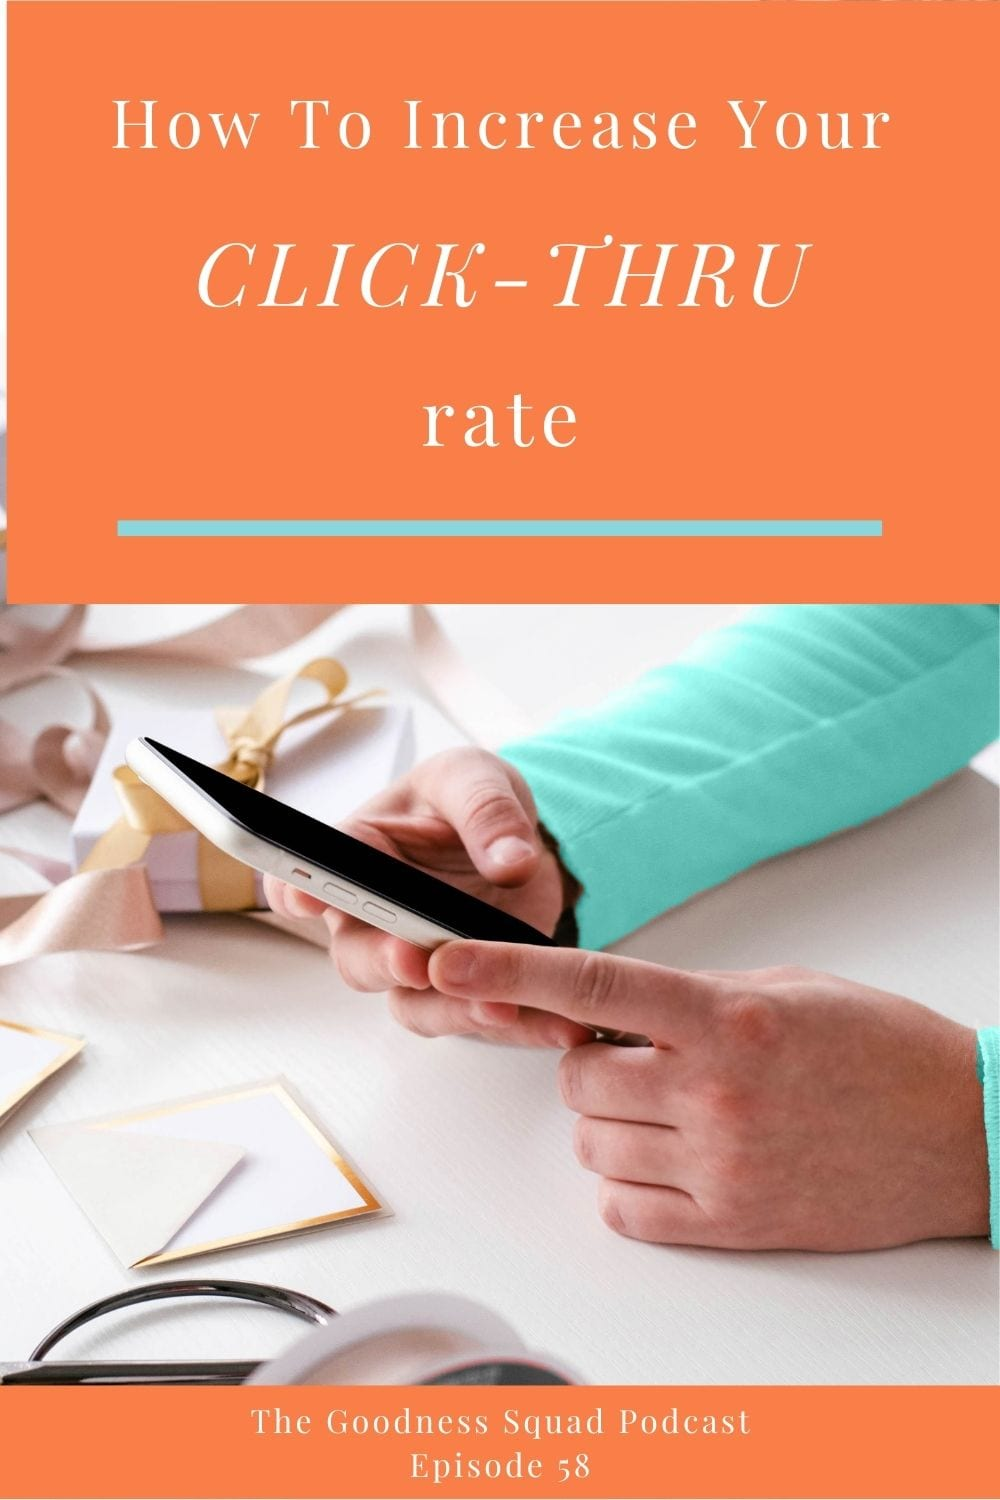 058_How to boost your click-thru rate without being sleazy